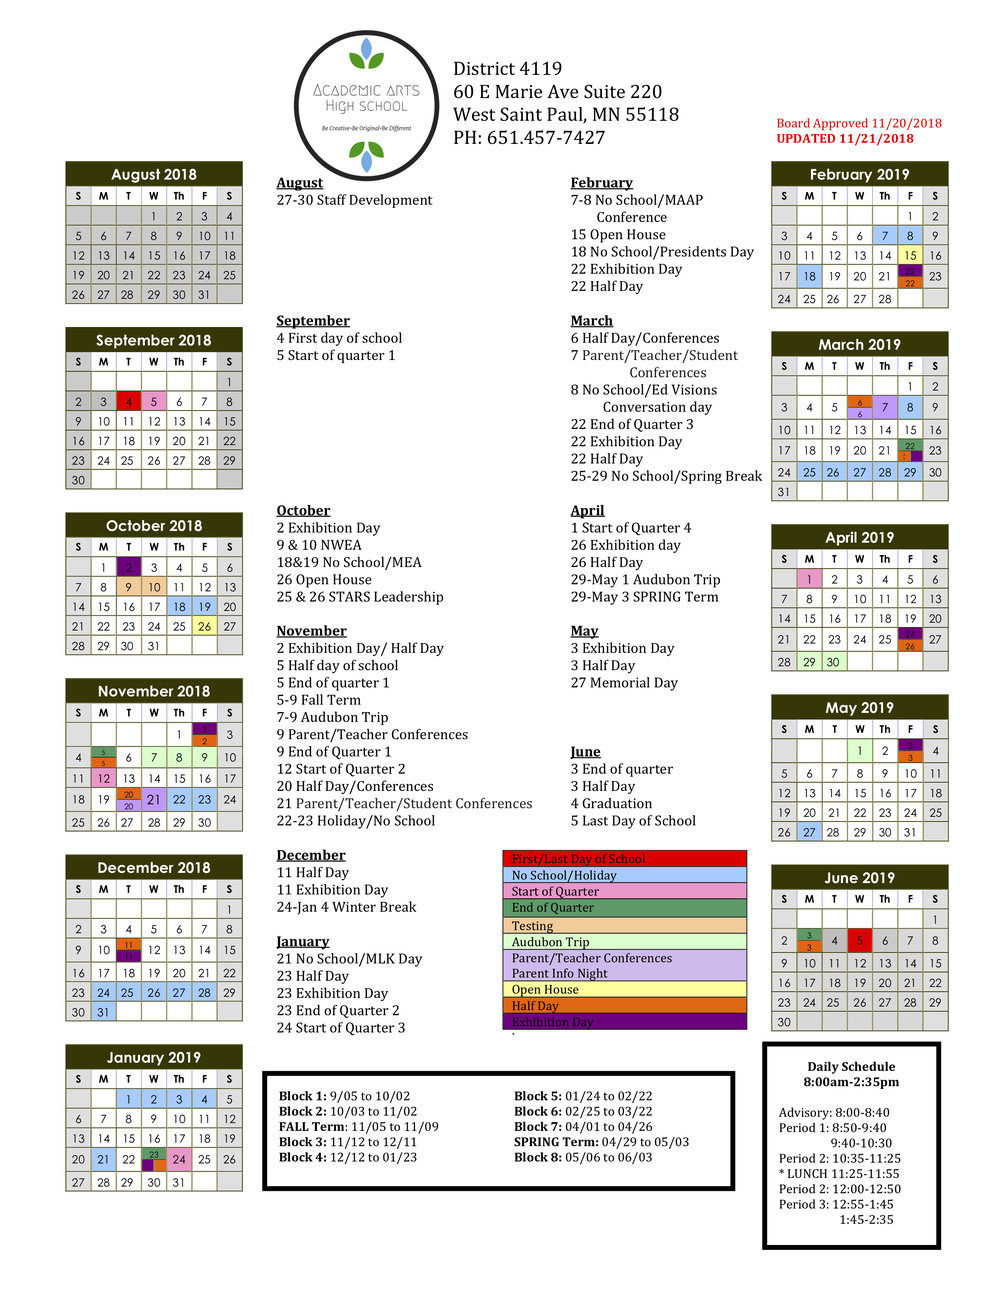 11-20 Board Approved.calendar.jpg